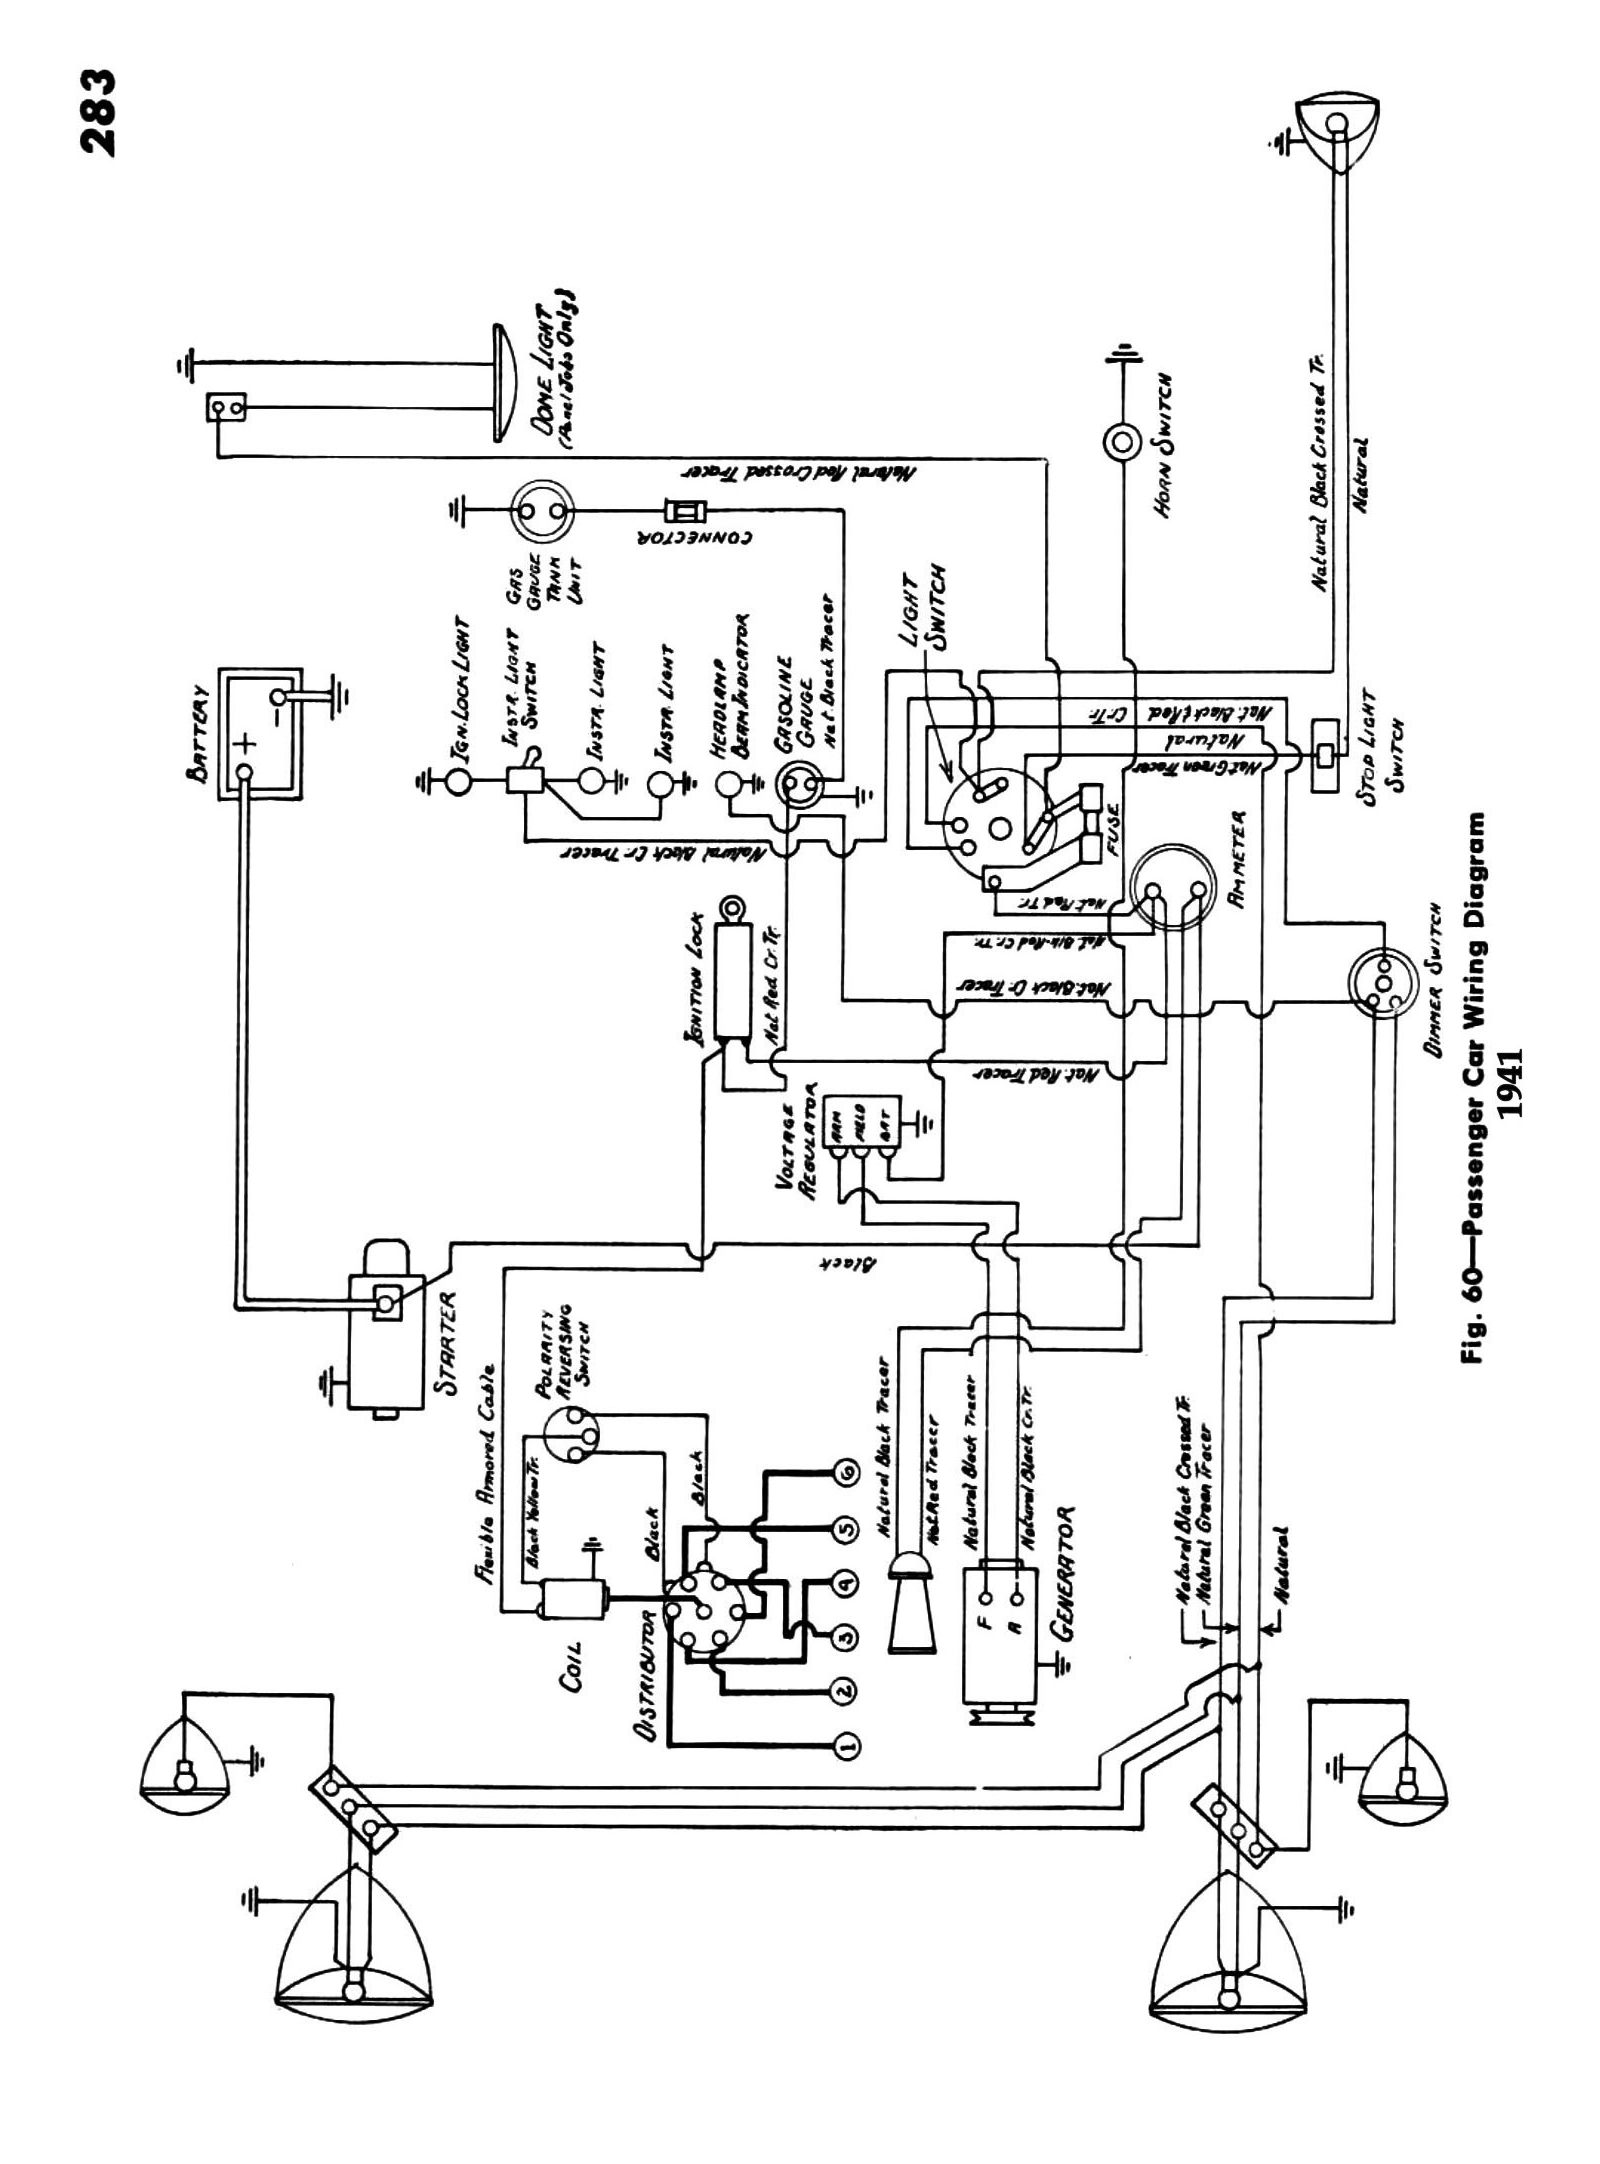 remote car starter wiring diagram with Wiring on Viper 4806v Installation Manual Wiring Diagrams also 2vo8z 2003 Gl Remote Starter The Gas Tank Cover Jetta Wont Work furthermore RepairGuideContent additionally Bulldog Security Keyless Entry System Wiring Diagram moreover 2004 Buick Rainier Fuse Diagram Wiring Schematic.